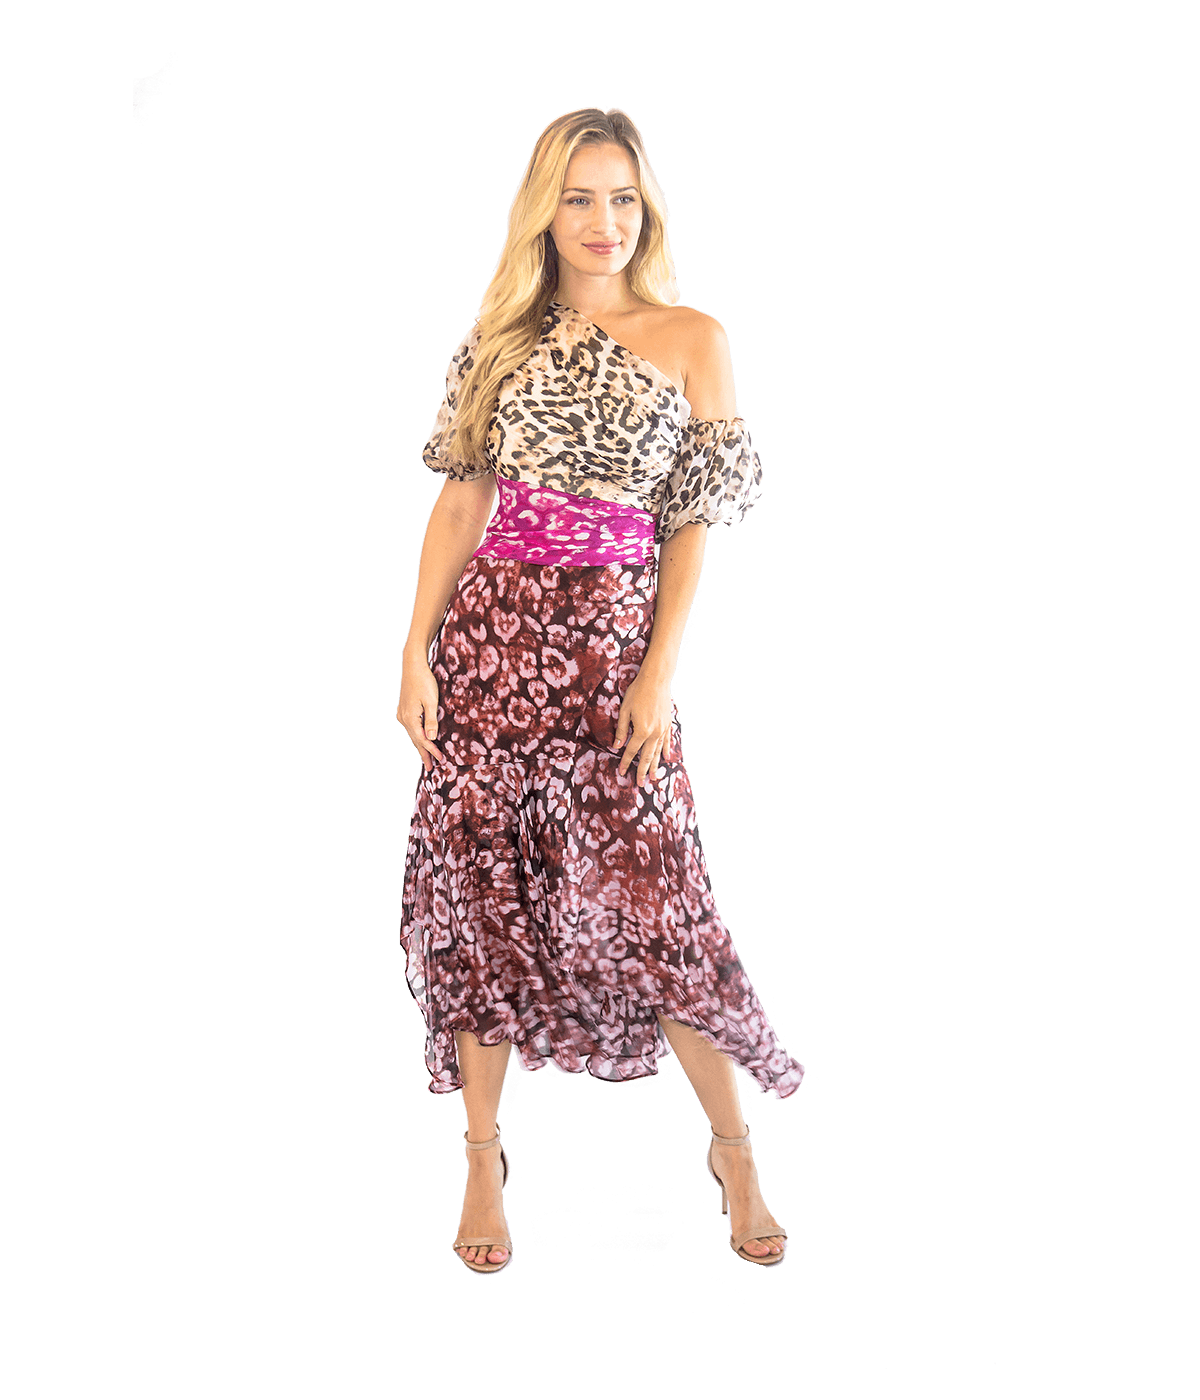 Jaylah Dress - Lady Jetset